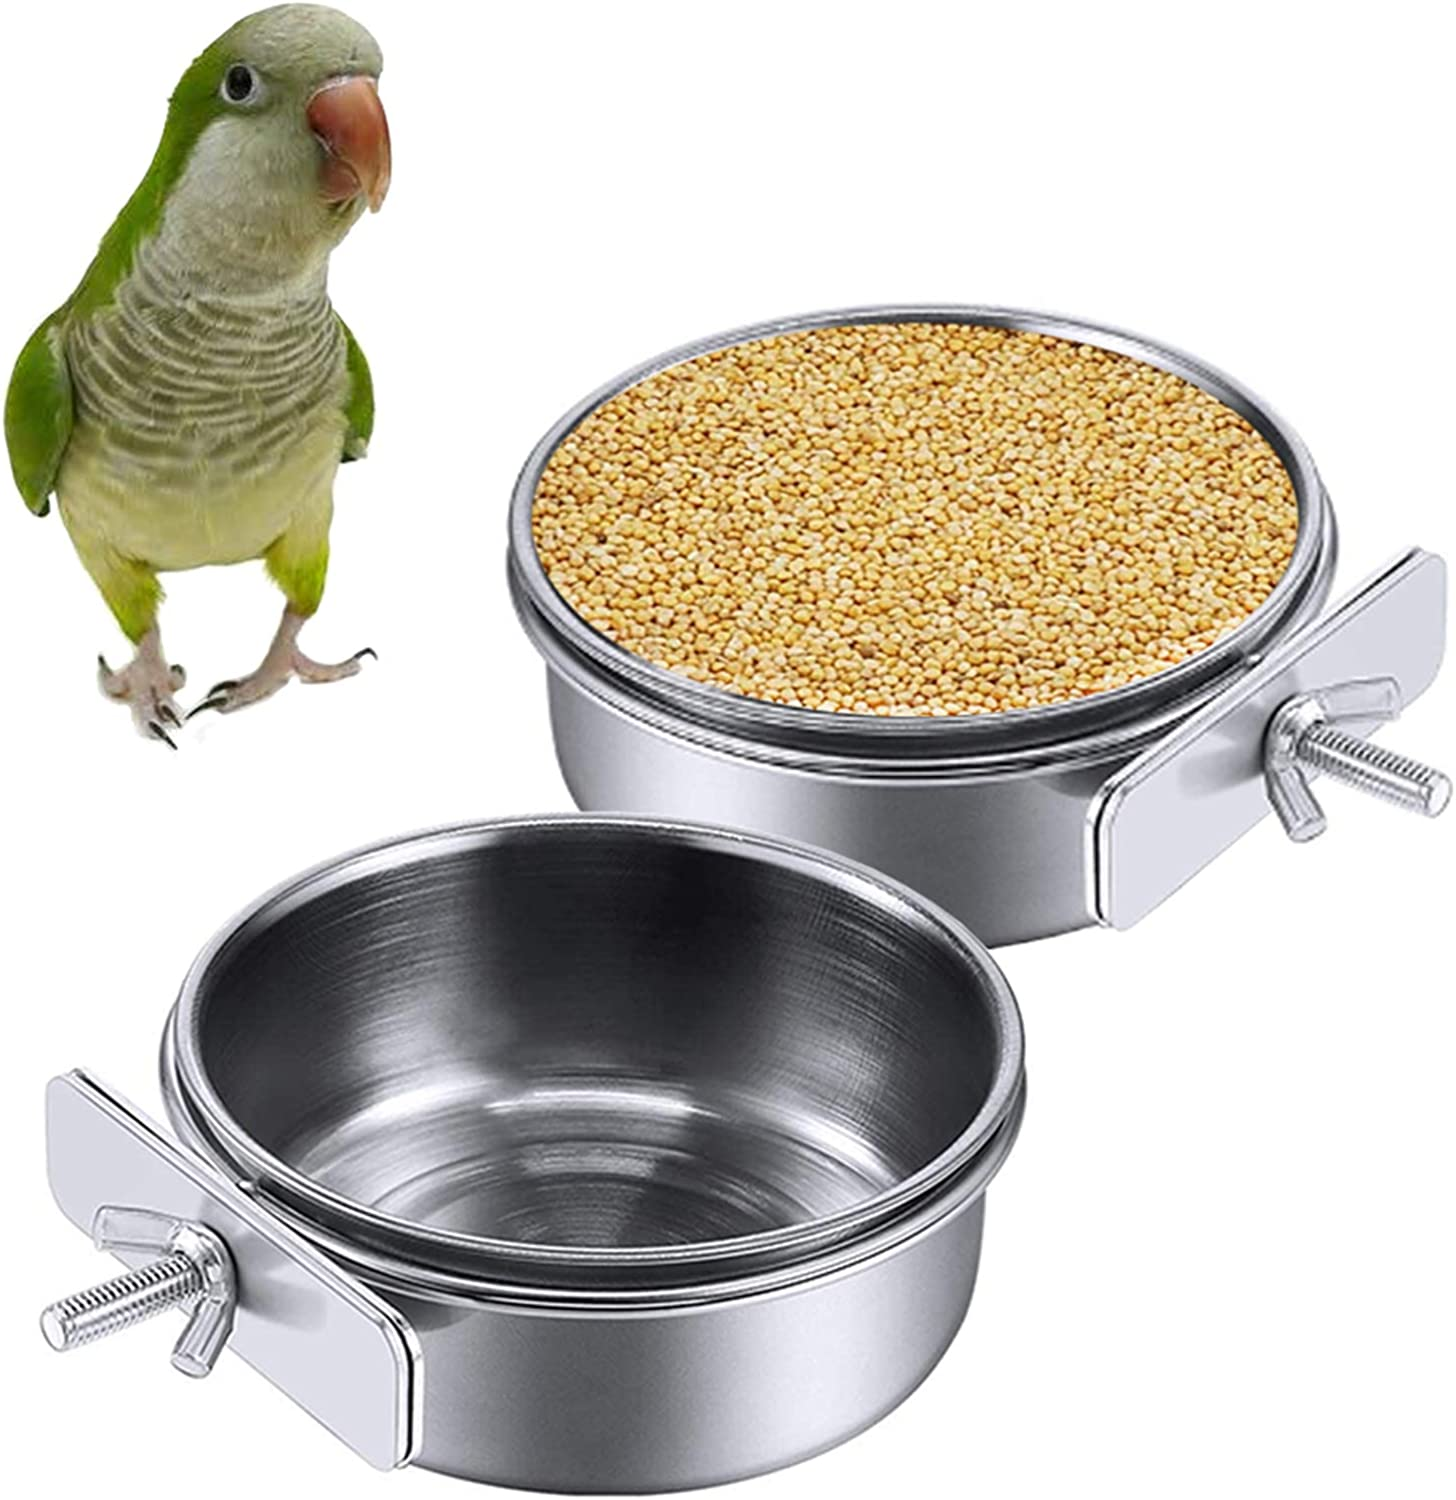 kathson 2 Pack Bird Feeding Cups with Clamp Holder, Parrot Food & Water Cage Hanging Bowl Stainless Steel Coop Cup Dish Feeder for Parakeet Cockatiels Conure Budgies Lovebird Finch